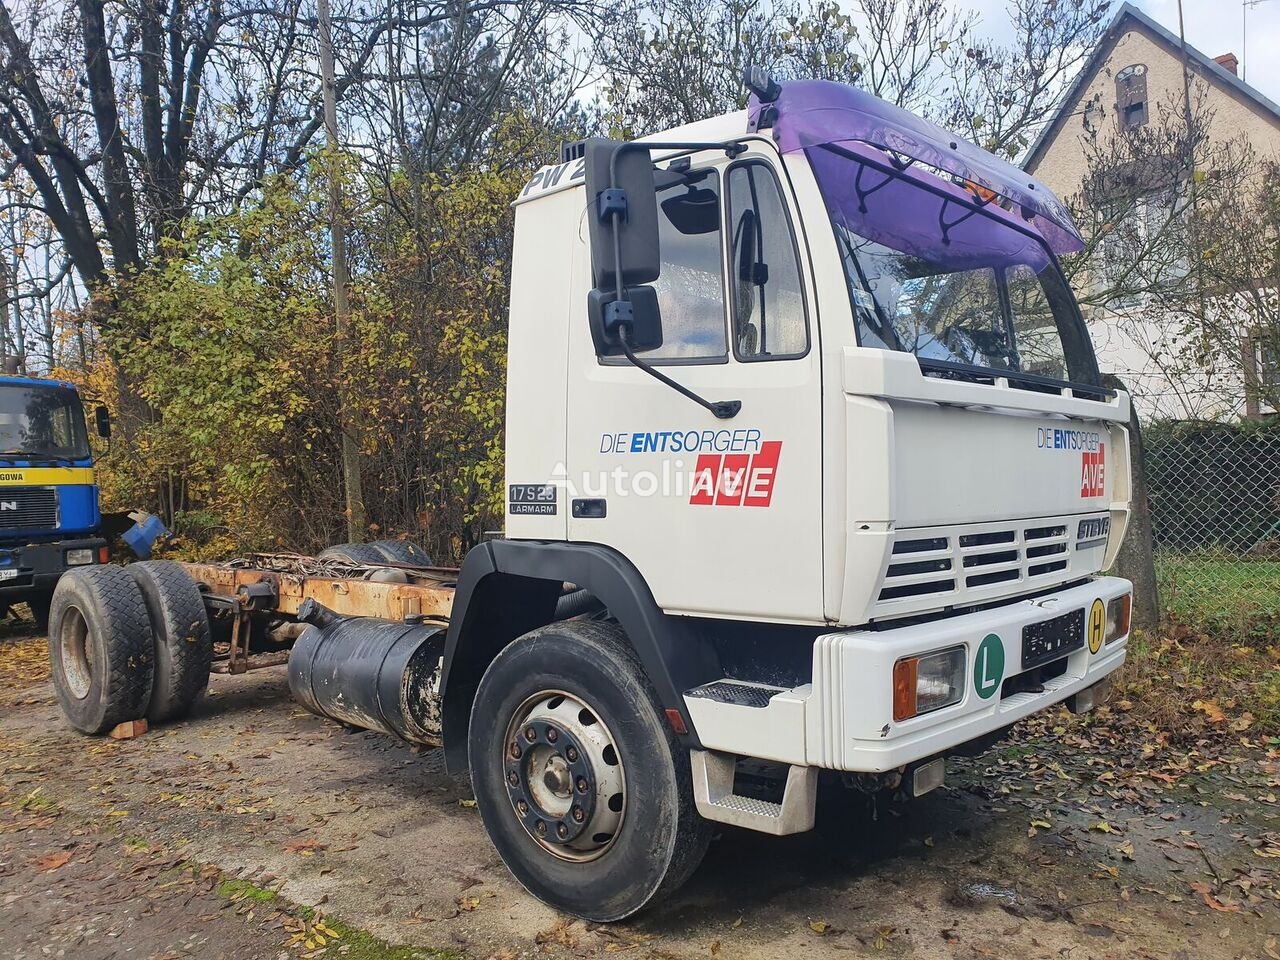 STEYR 17S23 TOOP HASSI chassis truck